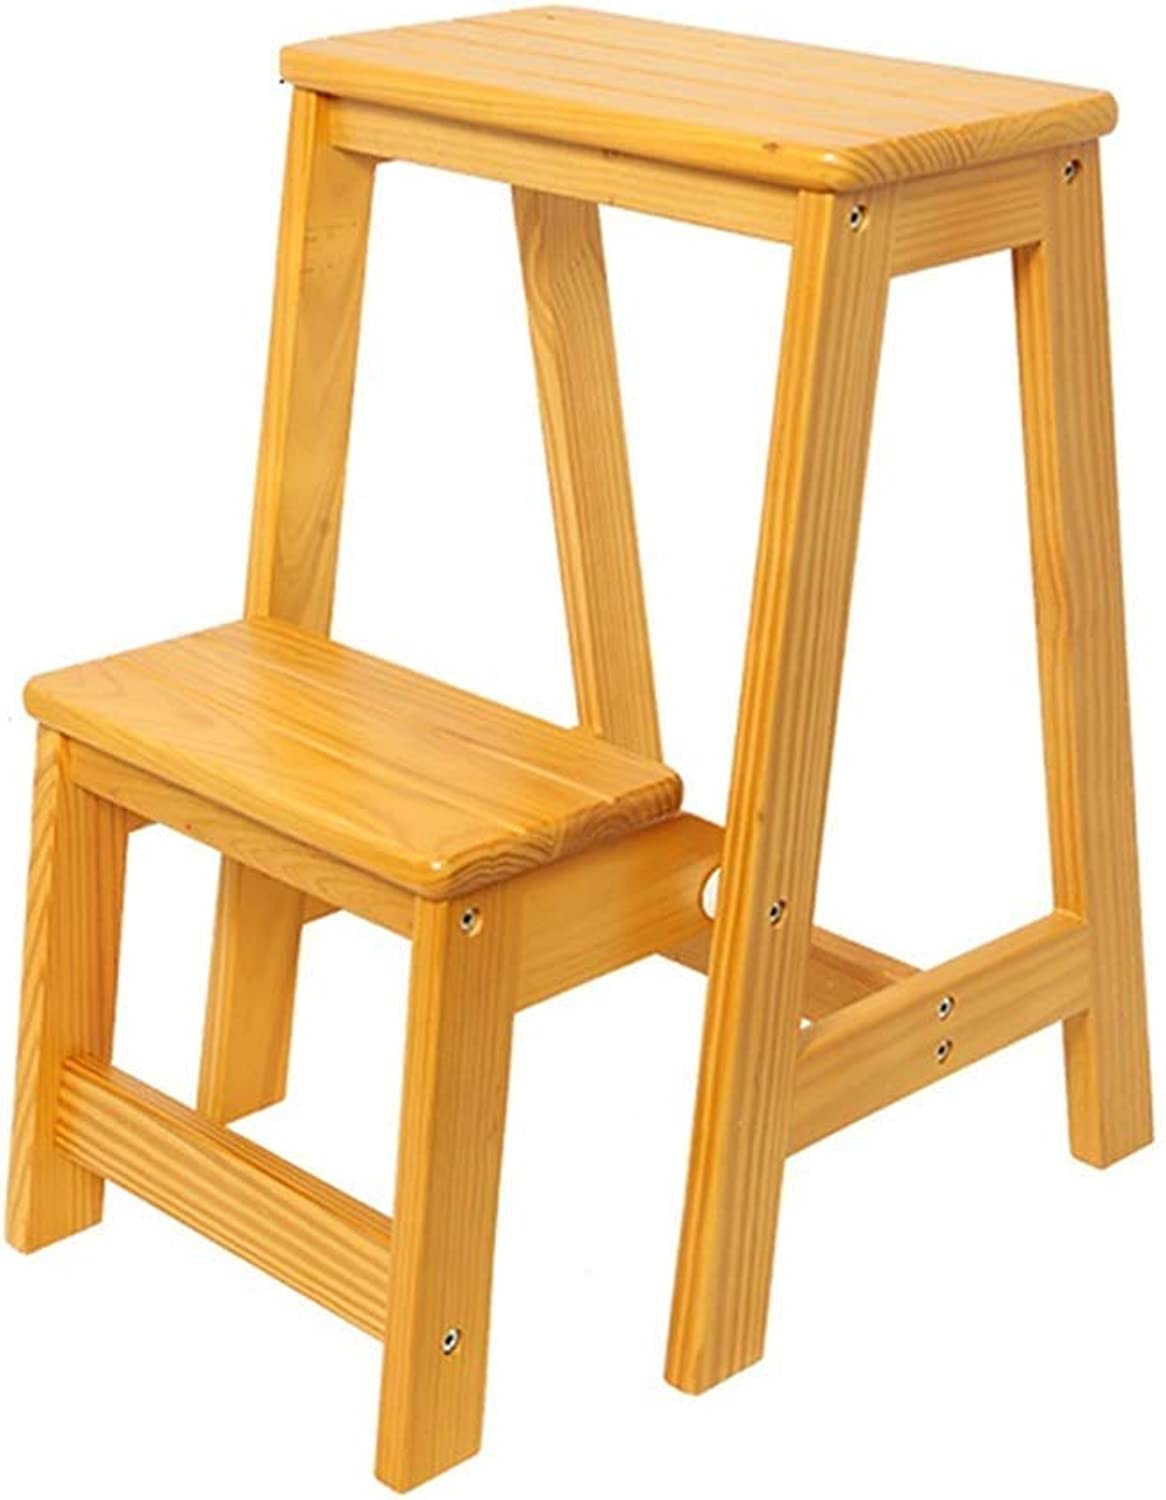 Yellow Solid Wood Folding Stool, 2-Step Ladder, Stair Step Garden Office Family Library, Maximum Load 150kg